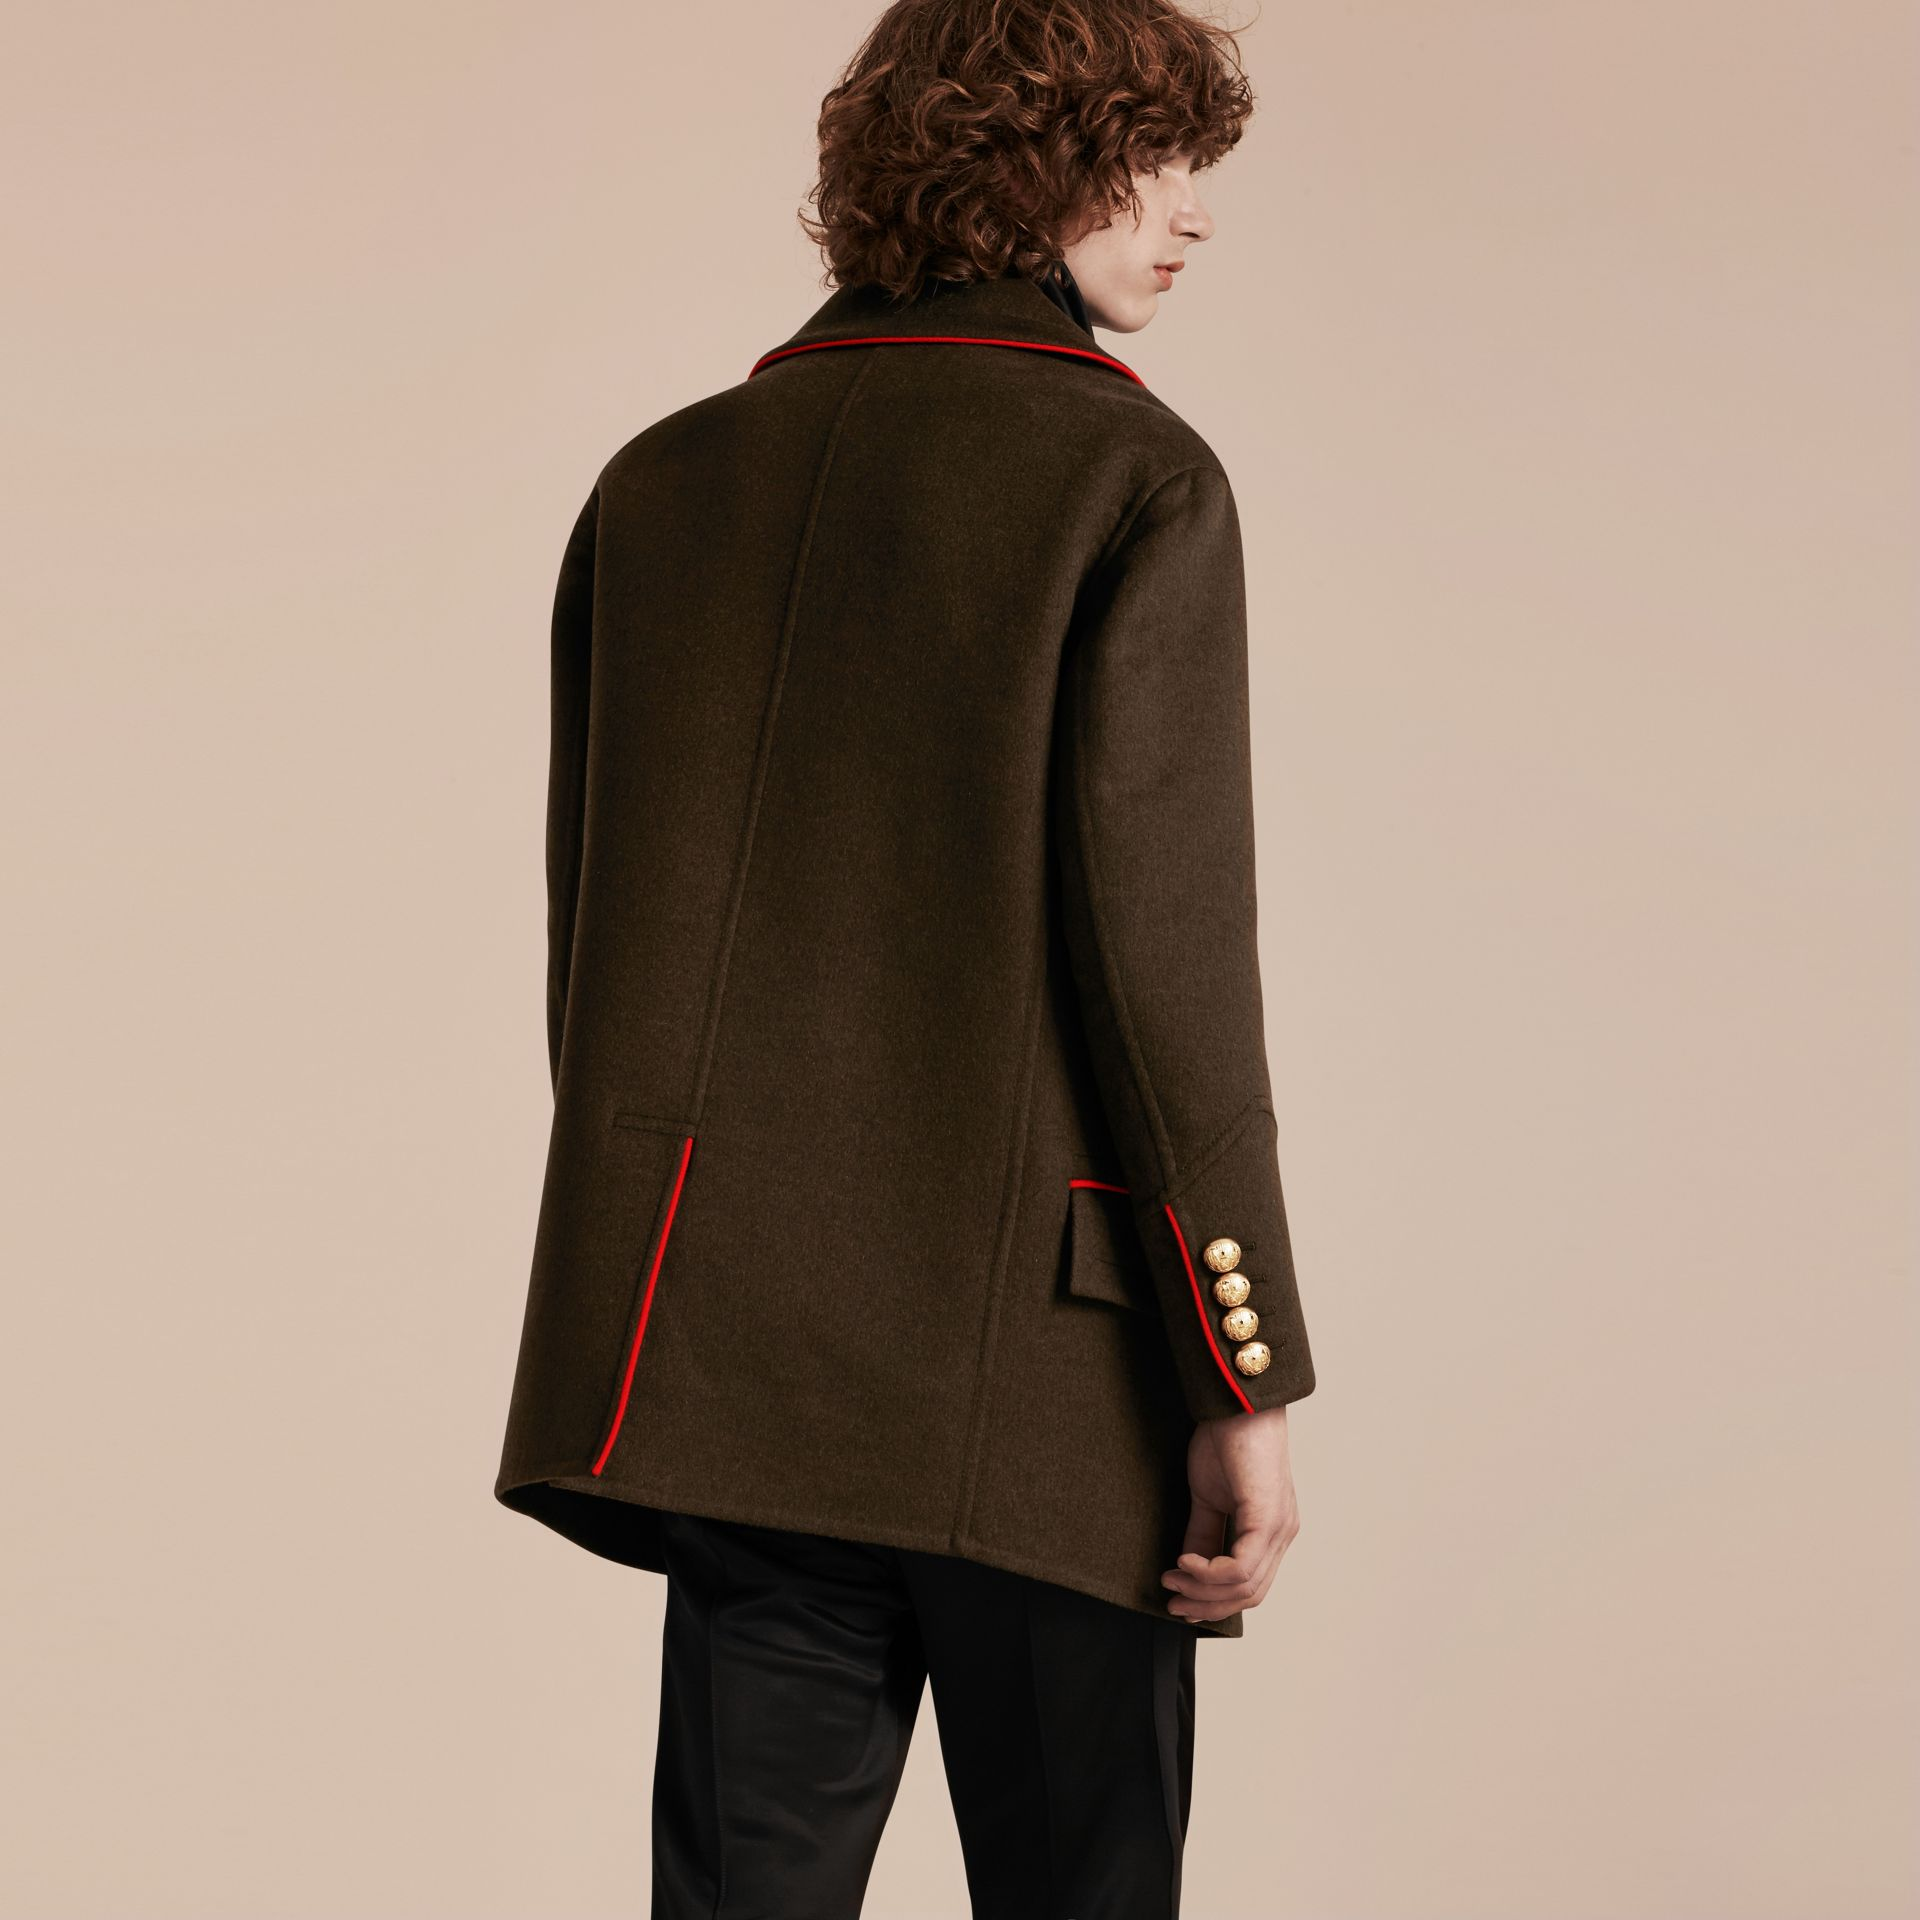 Dark military green Cashmere Wool Military Pea Coat - gallery image 2